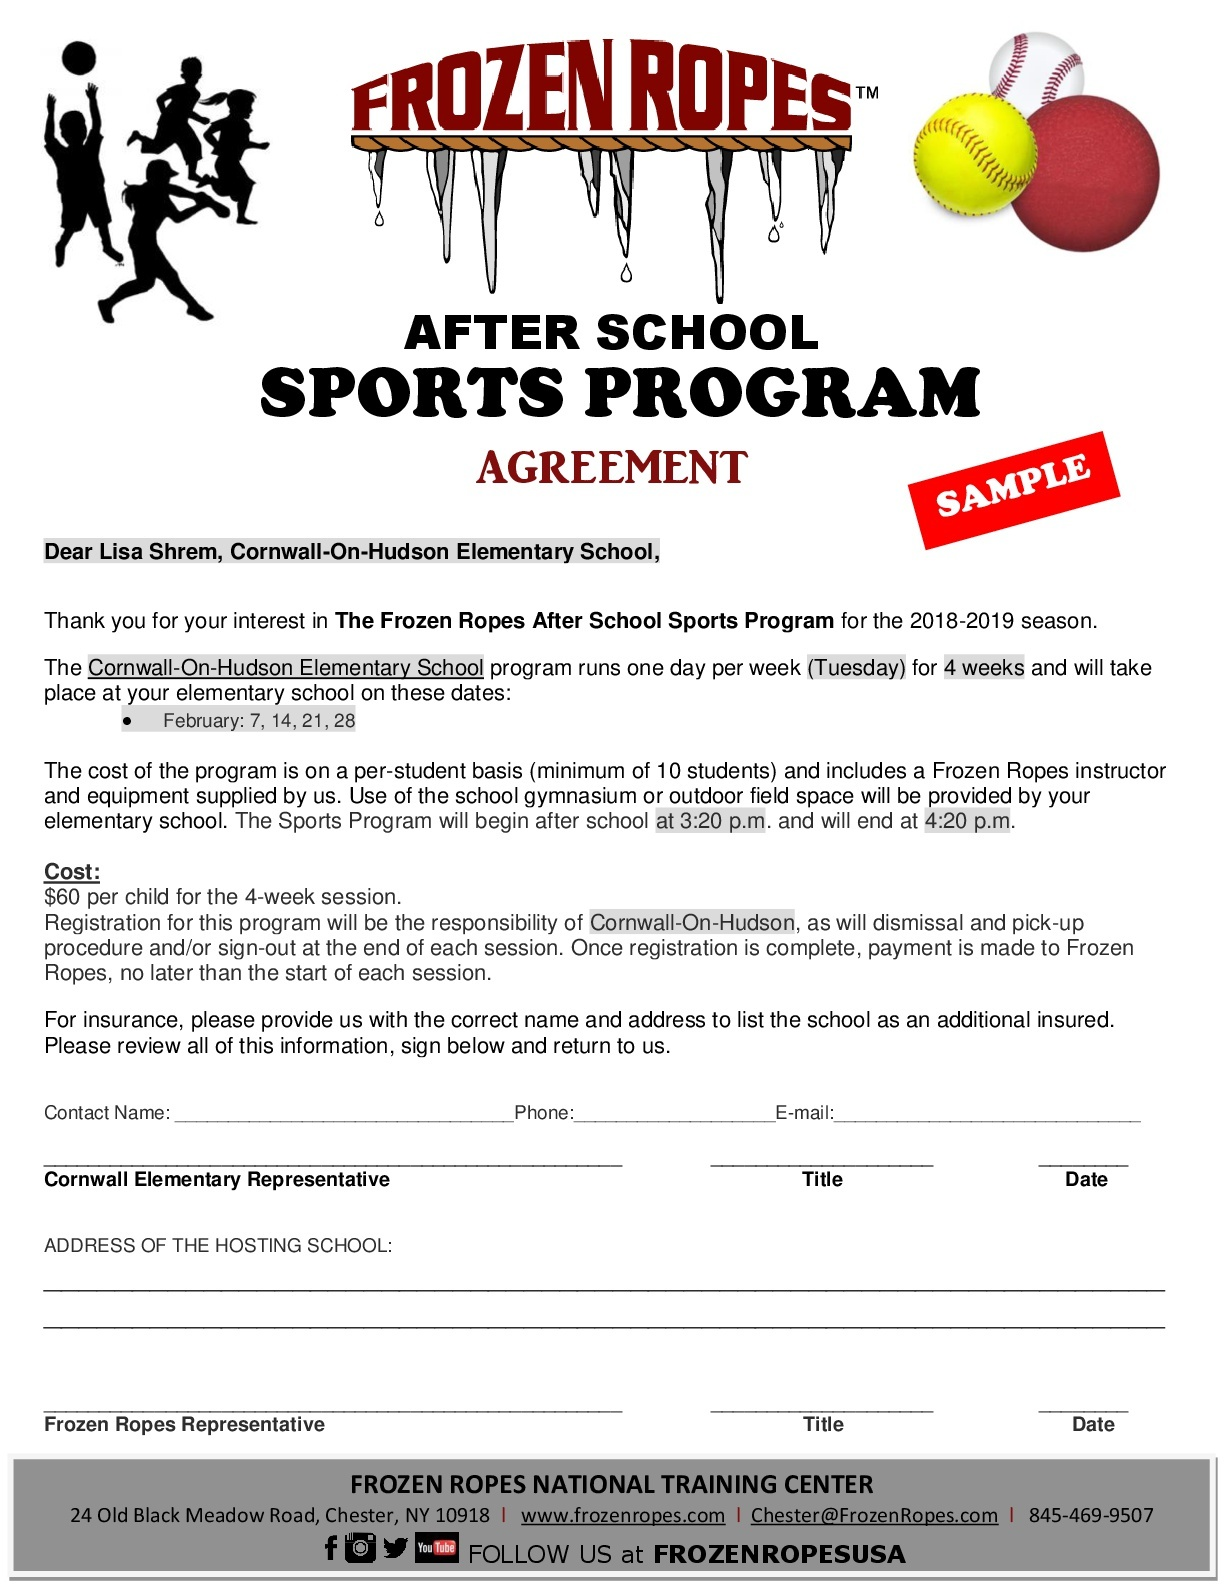 Sample Agreement Flyer